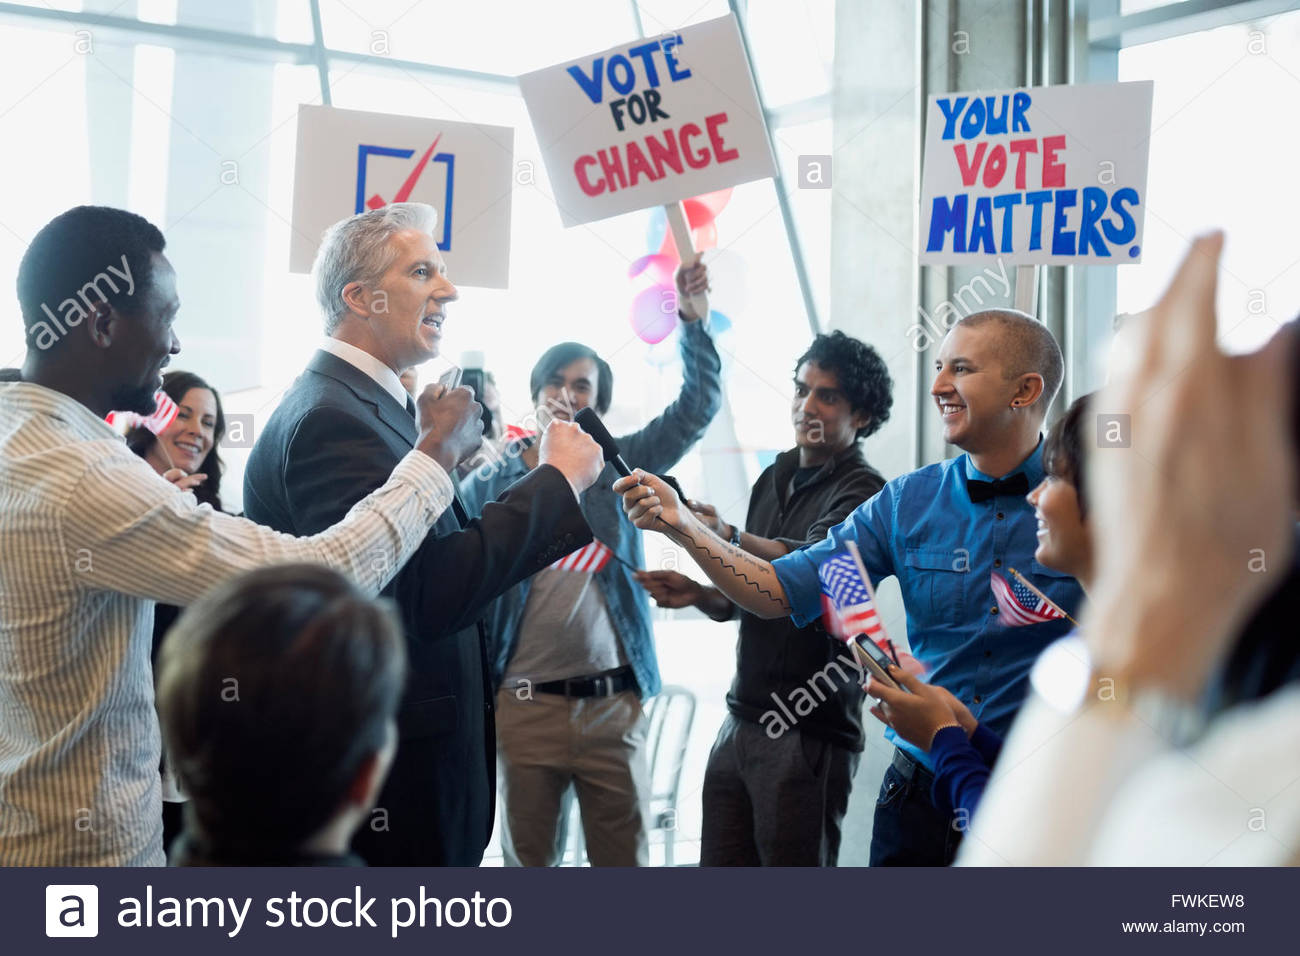 Politician greeting voters with signs at political rally - Stock Image